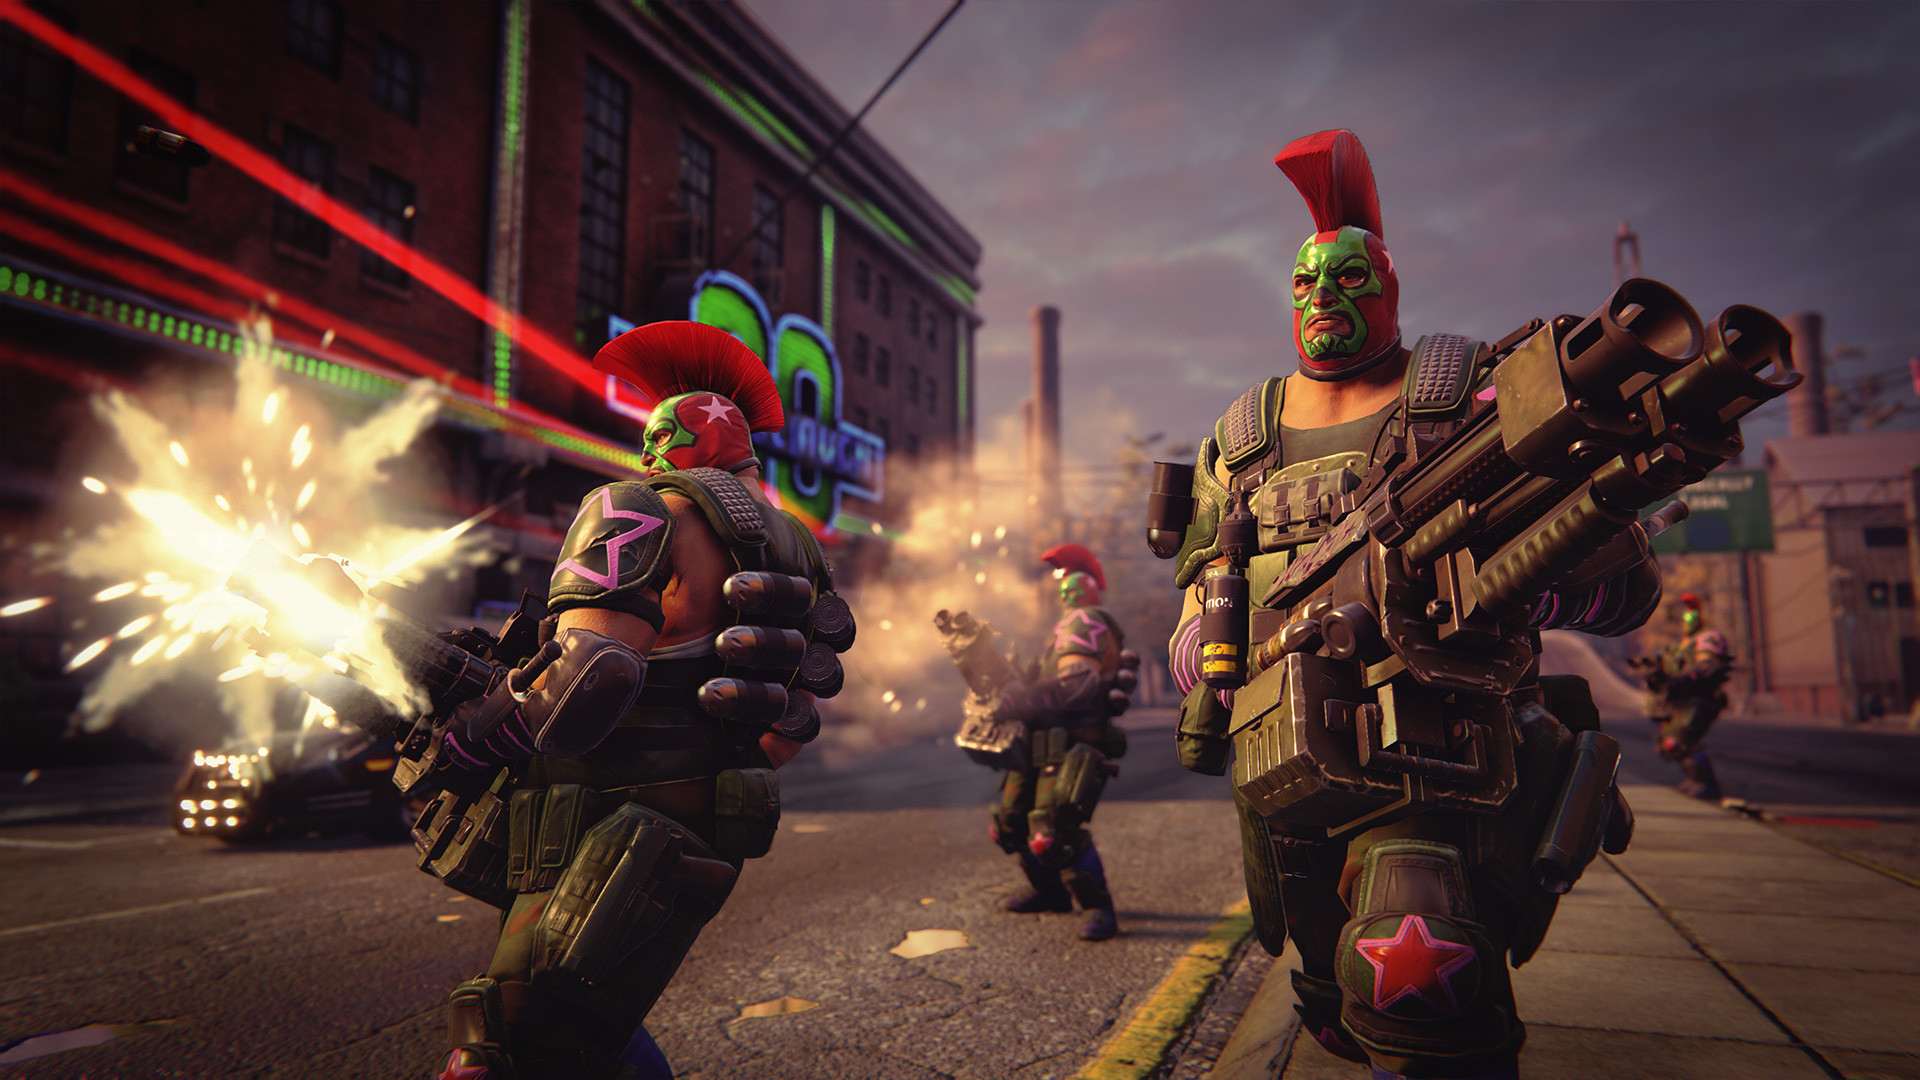 Image from Saints Row 3 Remaster - Developed by people behind Saints row 5